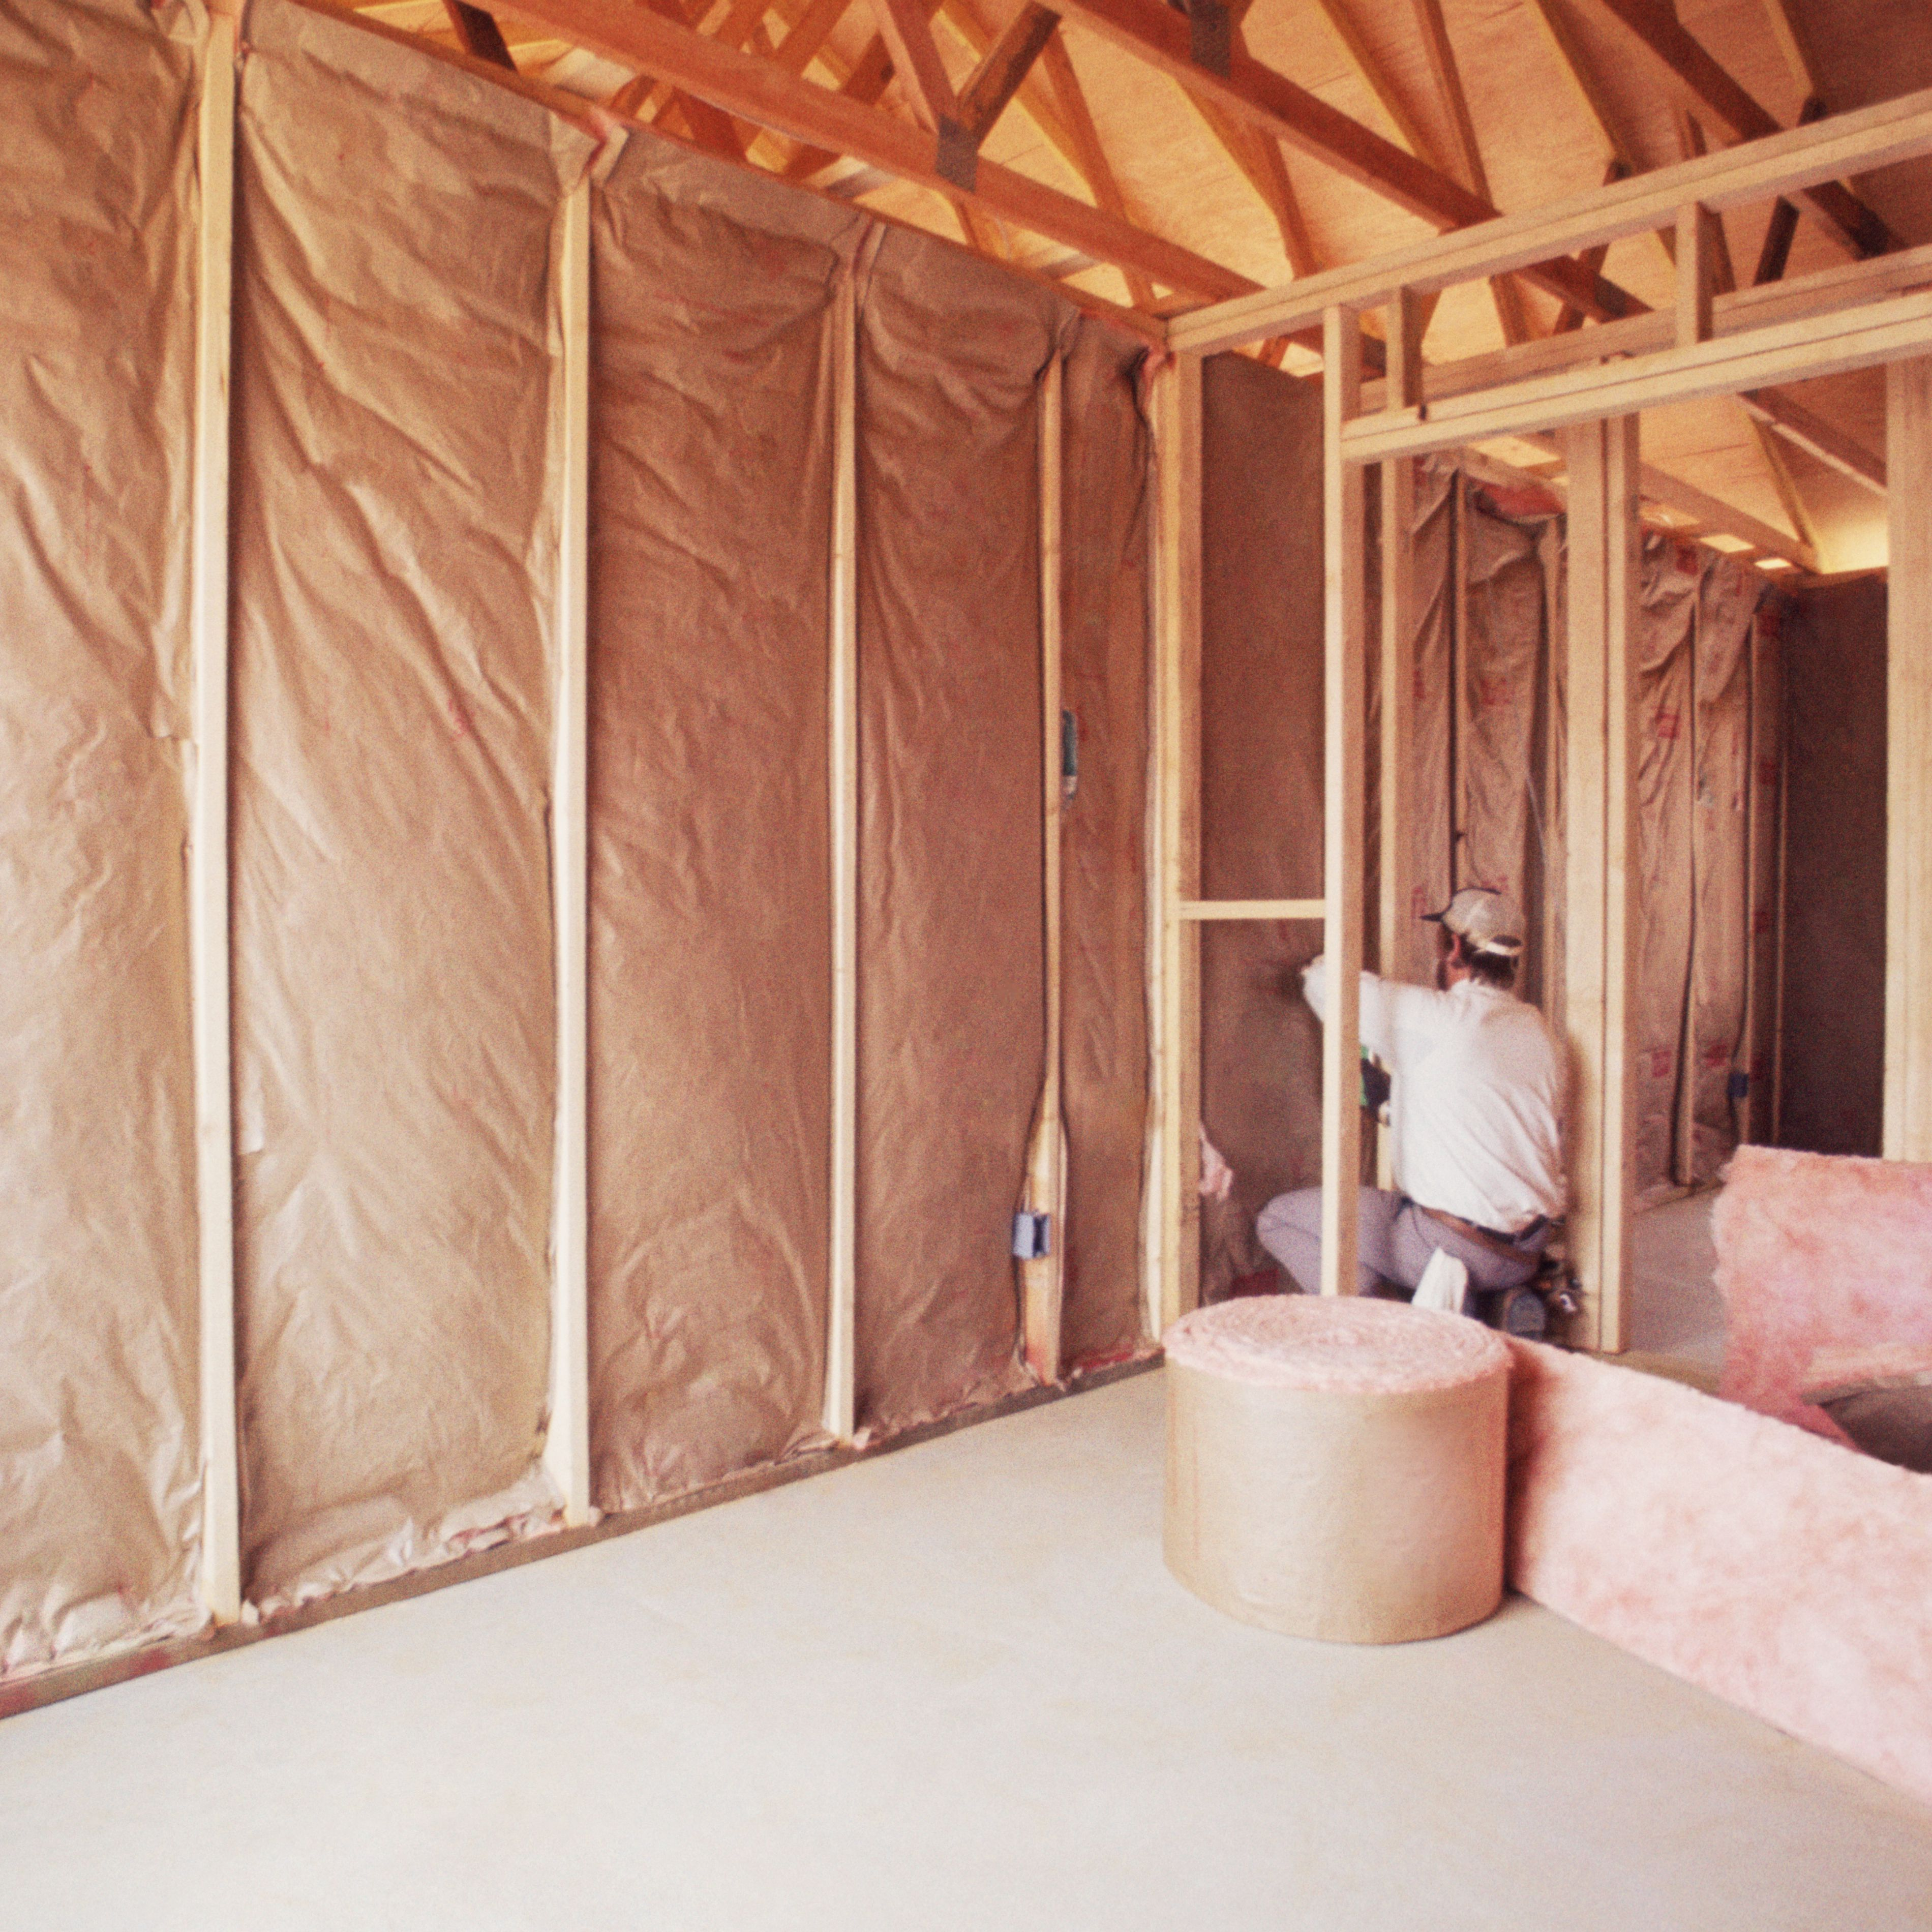 A Briefing on R-Value and Insulation